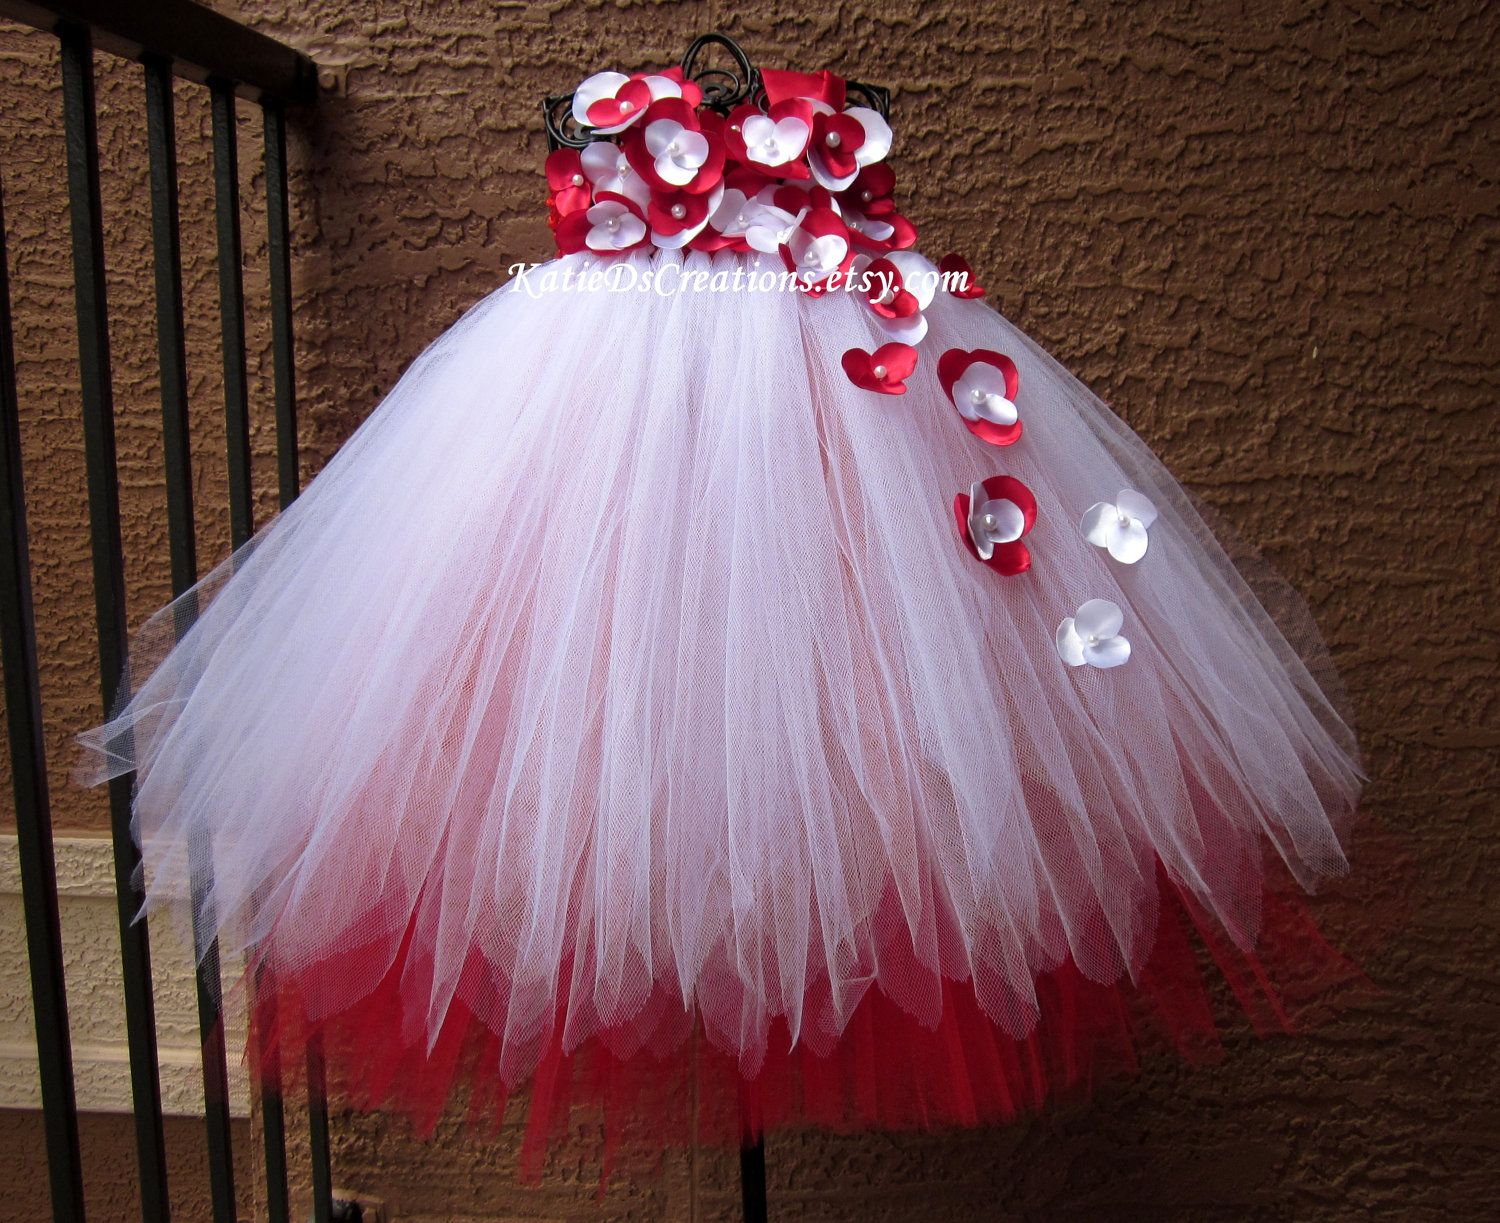 3091971b2 Red & White Flower Girl Tutu Dress by KatieDscreations on Etsy, $95.00